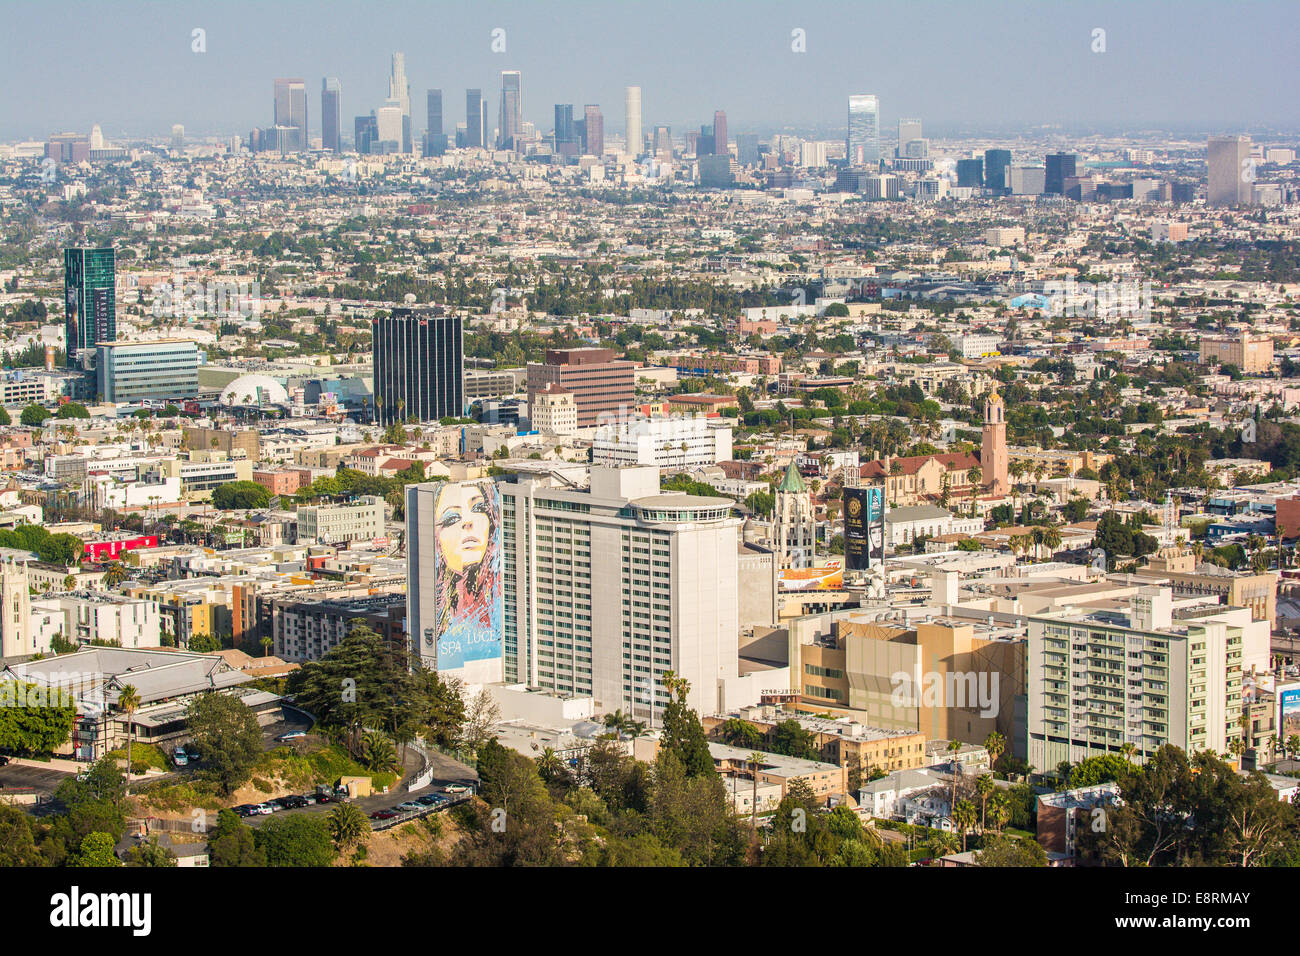 Los Angeles, California, USA Stock Photo